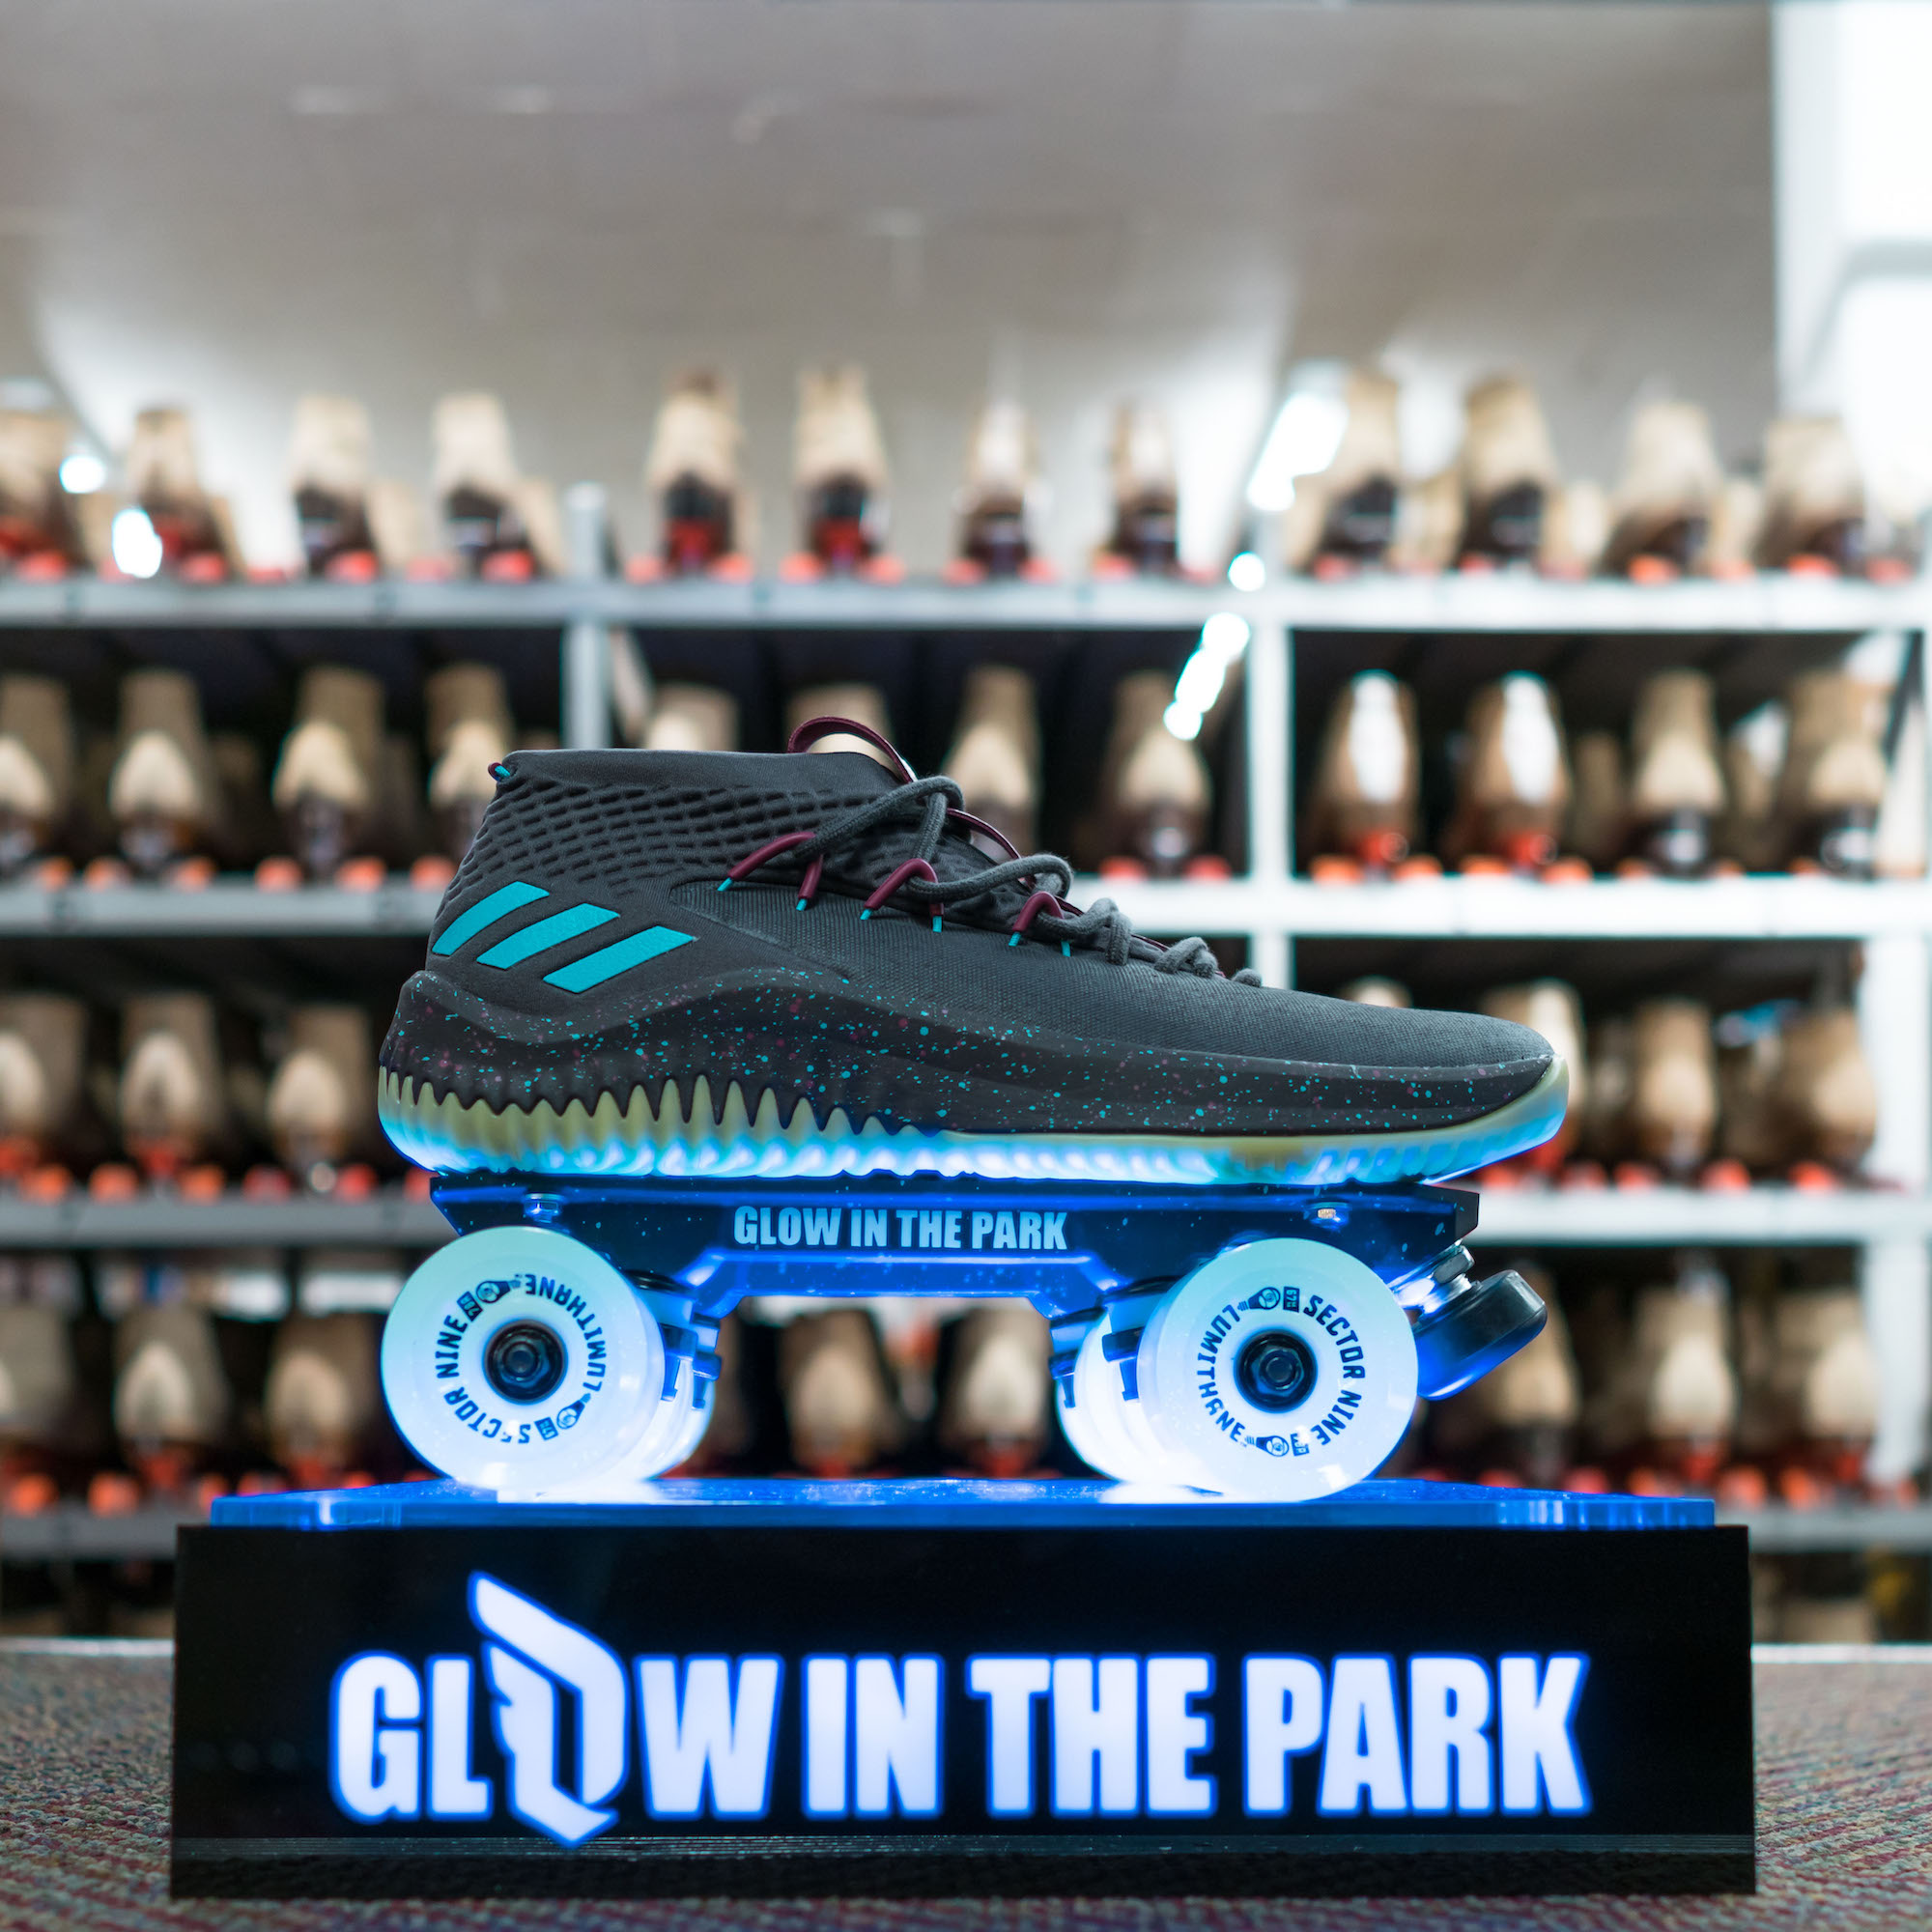 adidas dame 4 glow in the park 0